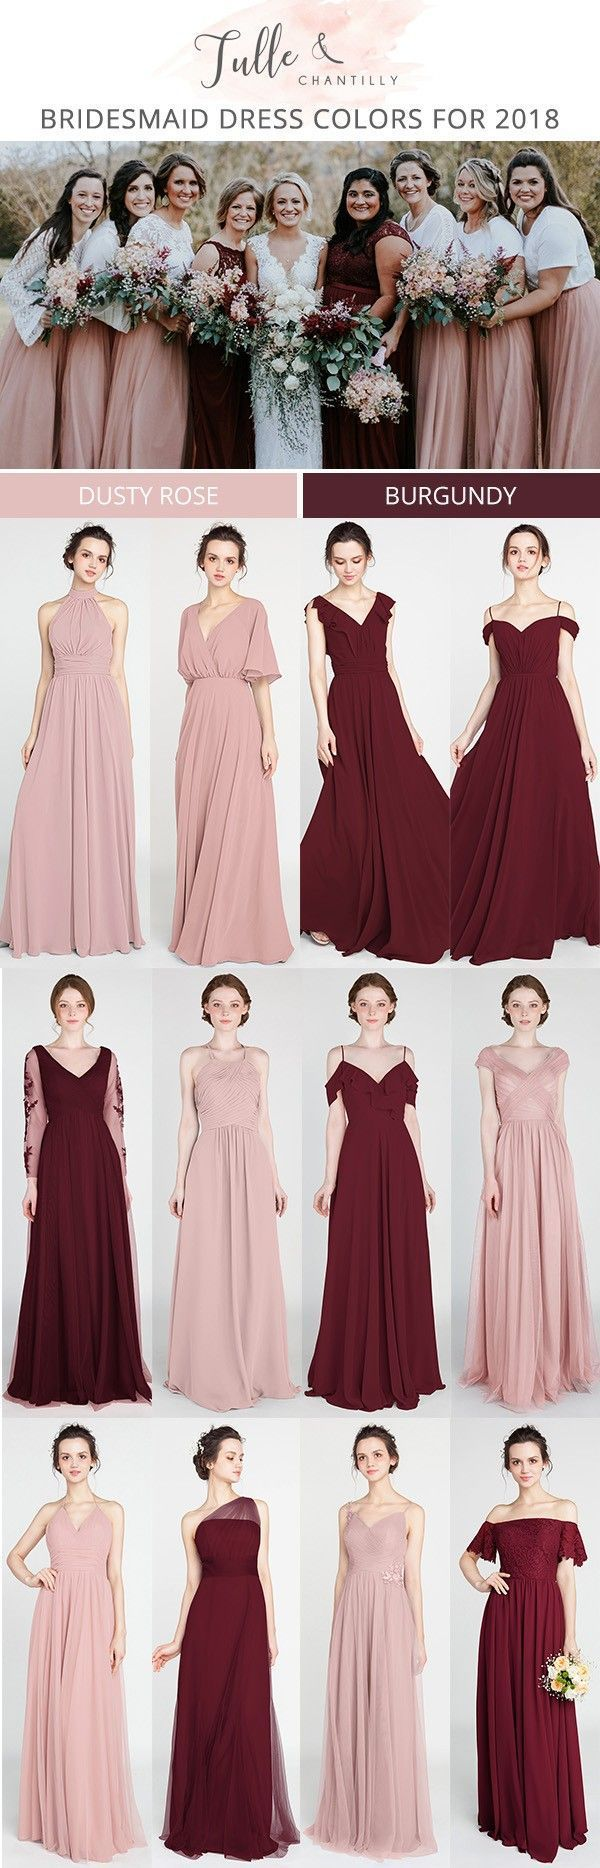 Dusty rose and burgundy bridesmaid dresses for trends